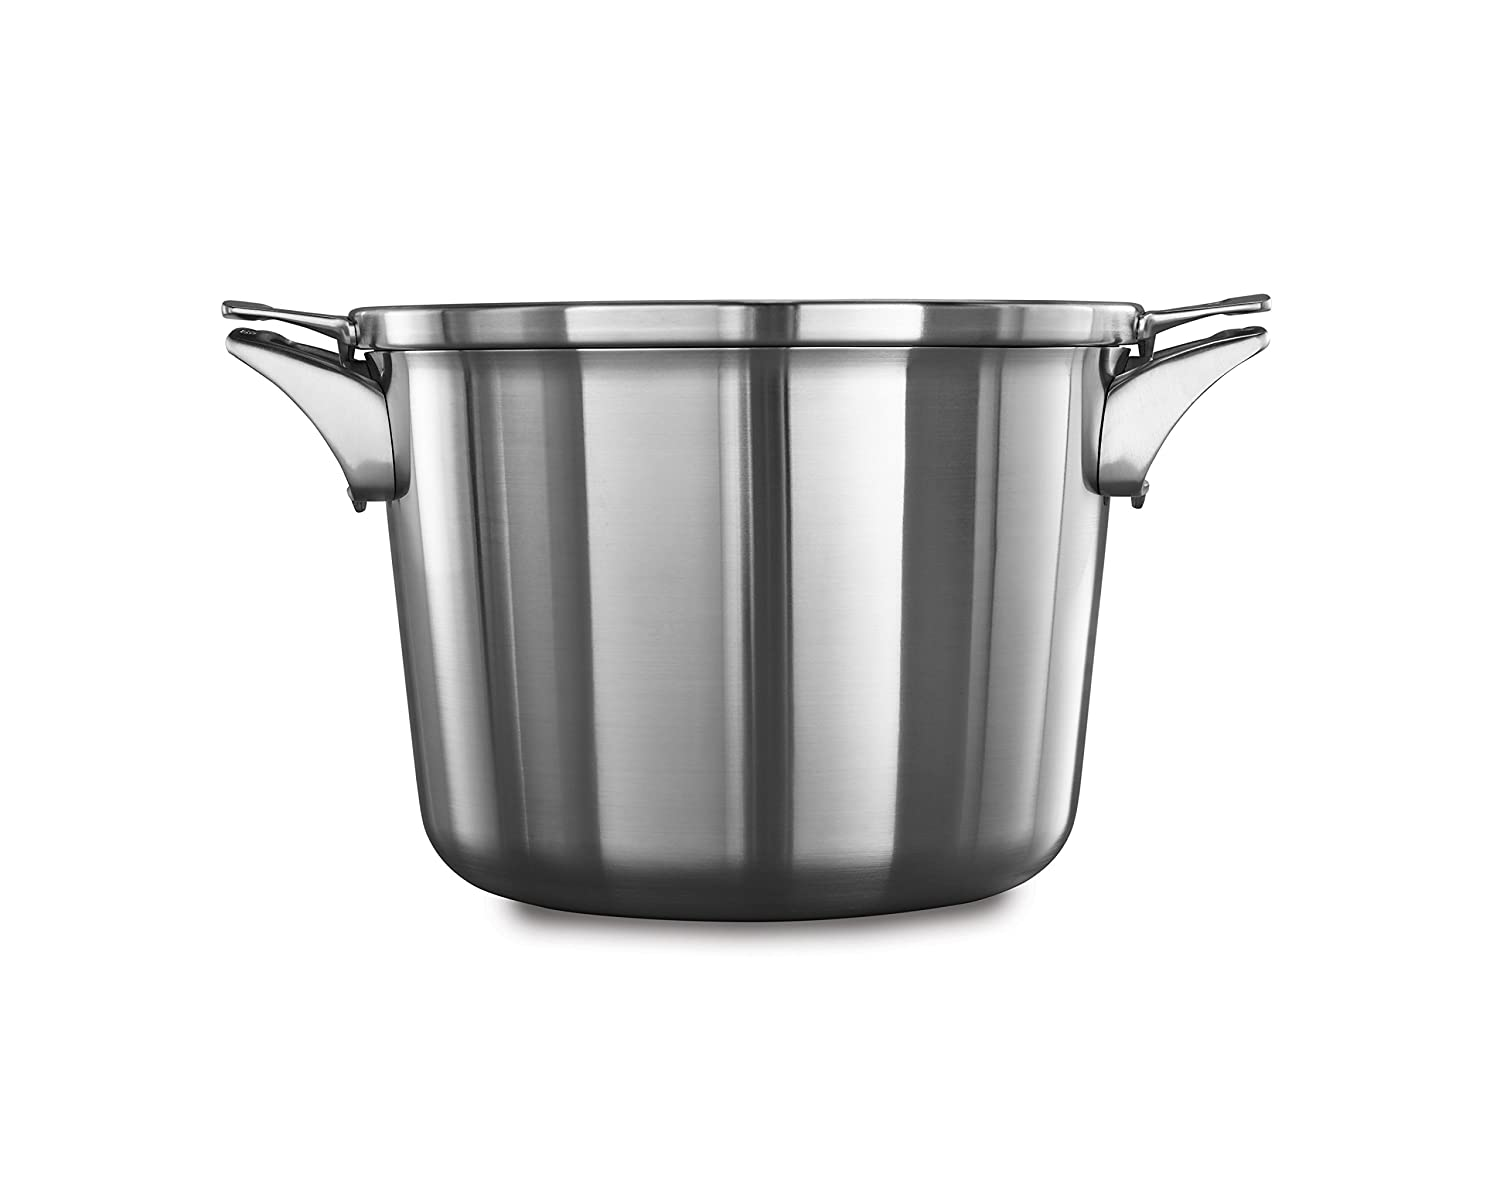 Calphalon Premier Space Saving Stainless Steel 8qt Stock Pot with Cover